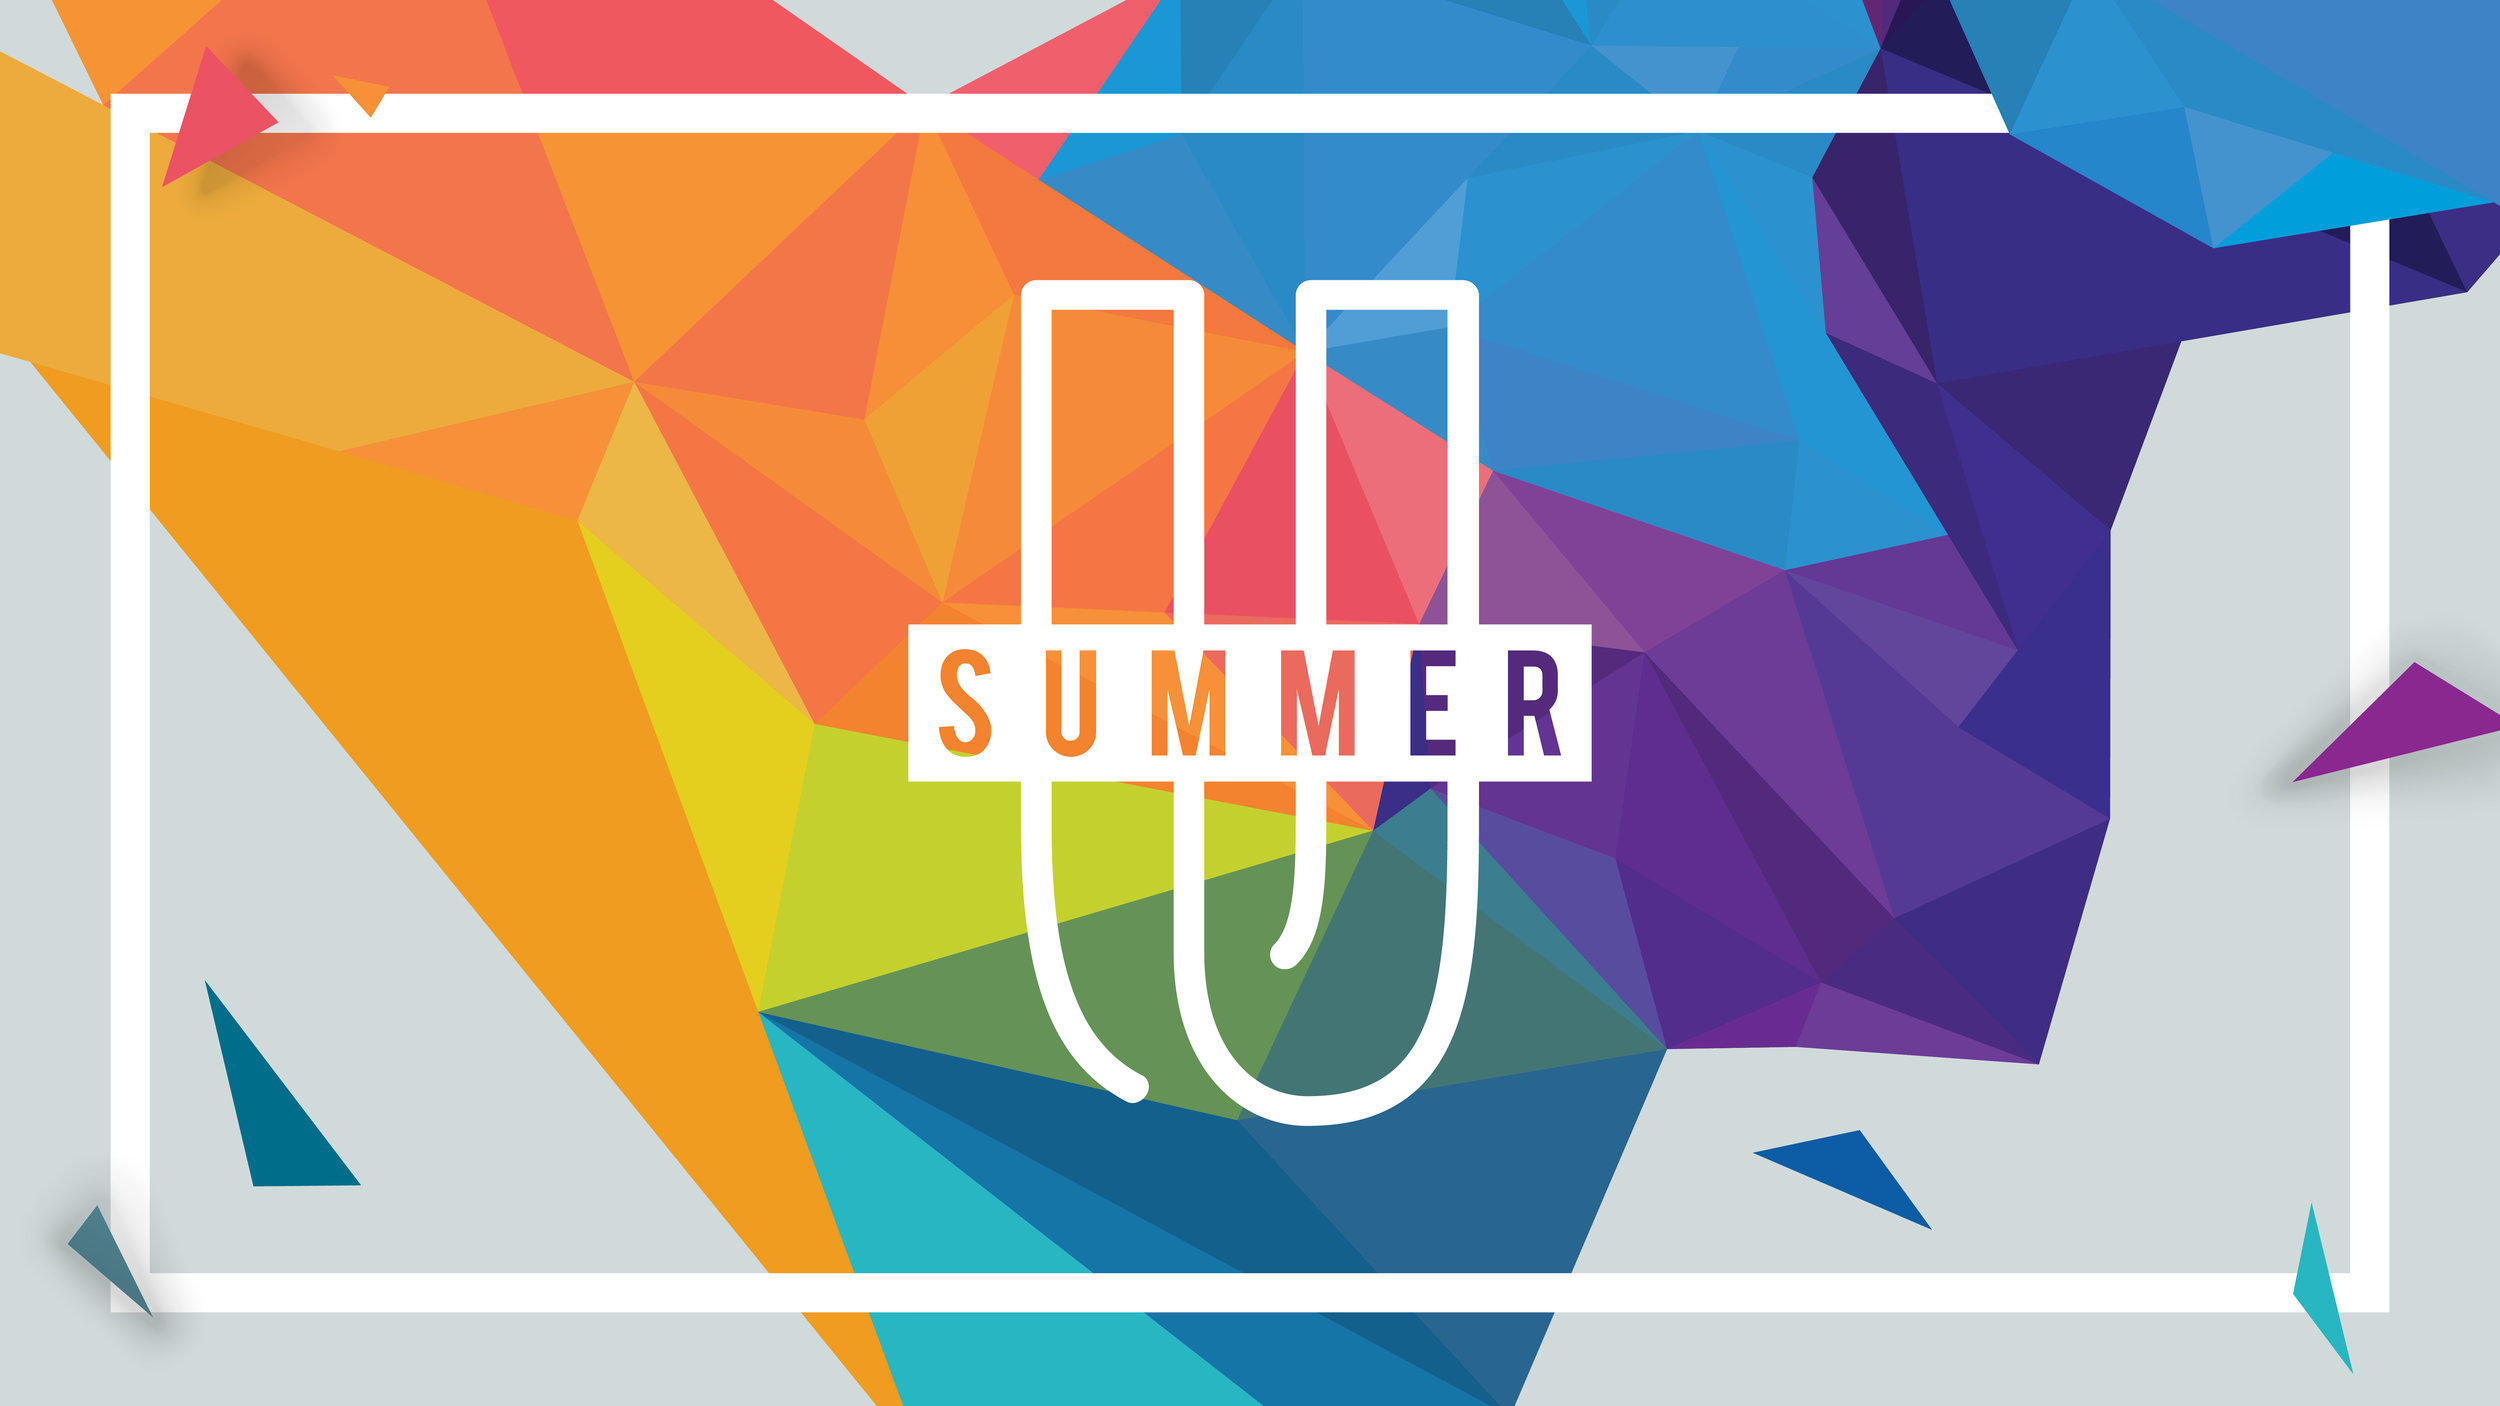 SummerU-16x9_Simple.jpg